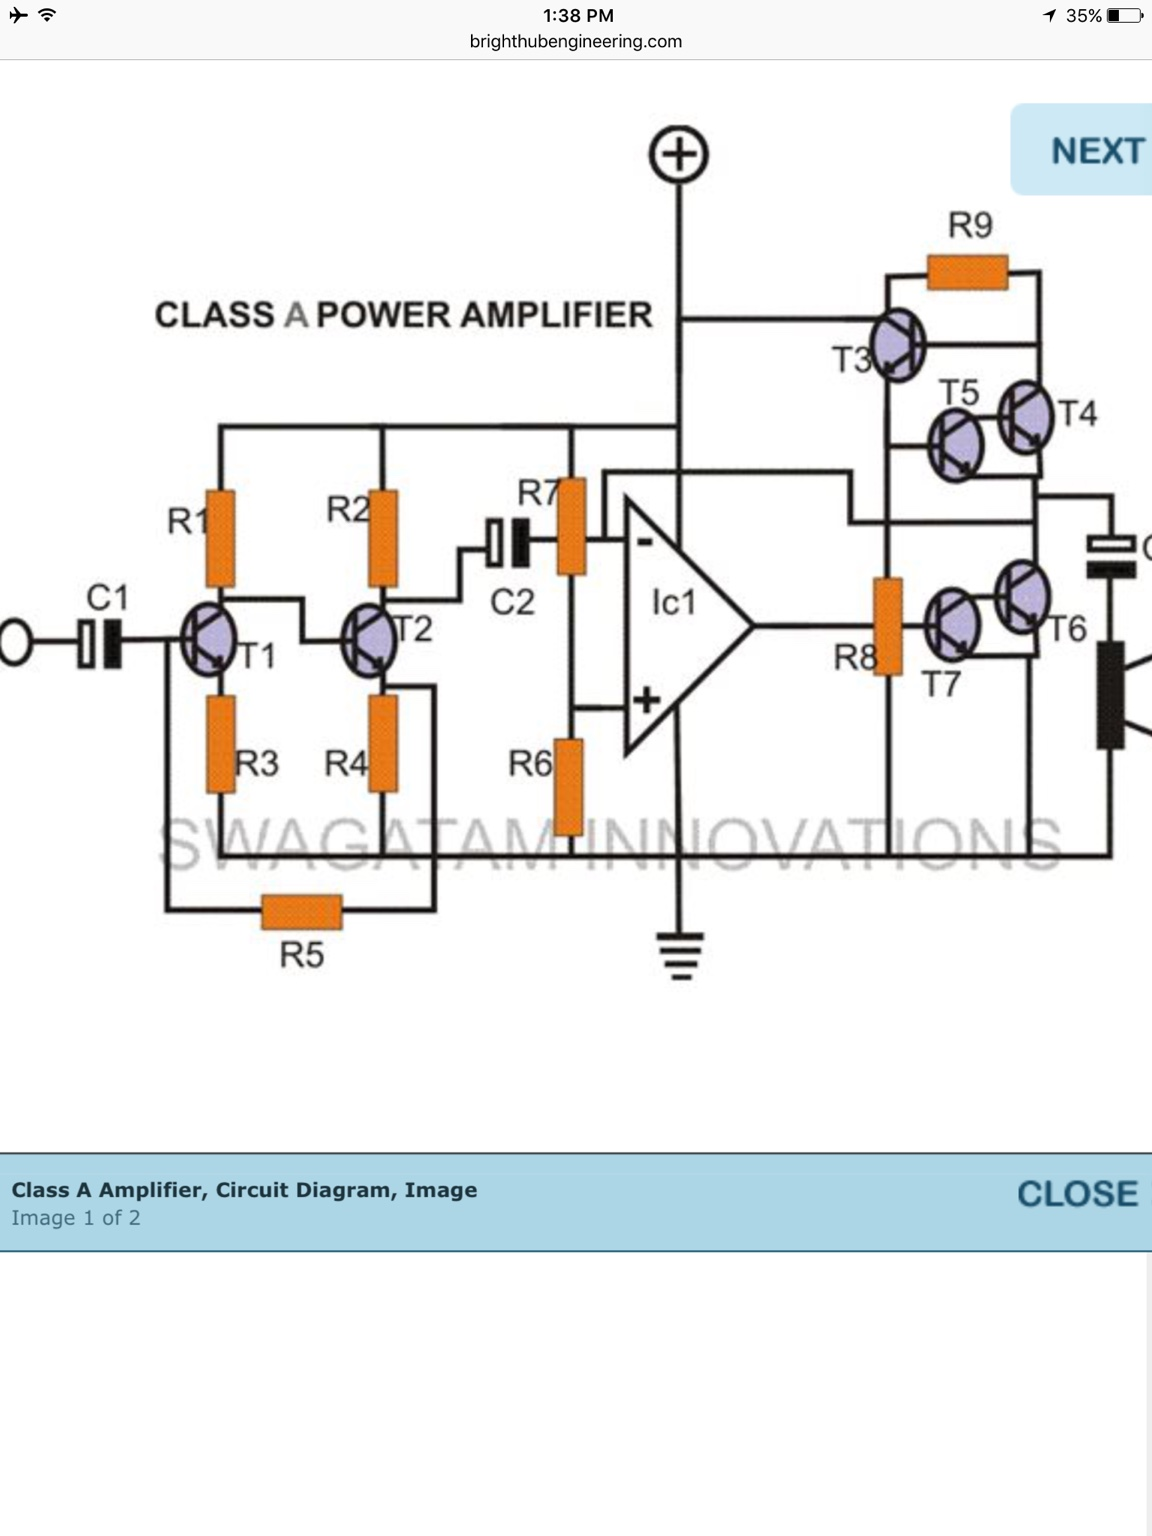 Did Class A Amplifier Is This Schematic Good Diyaudio D Circuit Diagram Click The Image To Open In Full Size